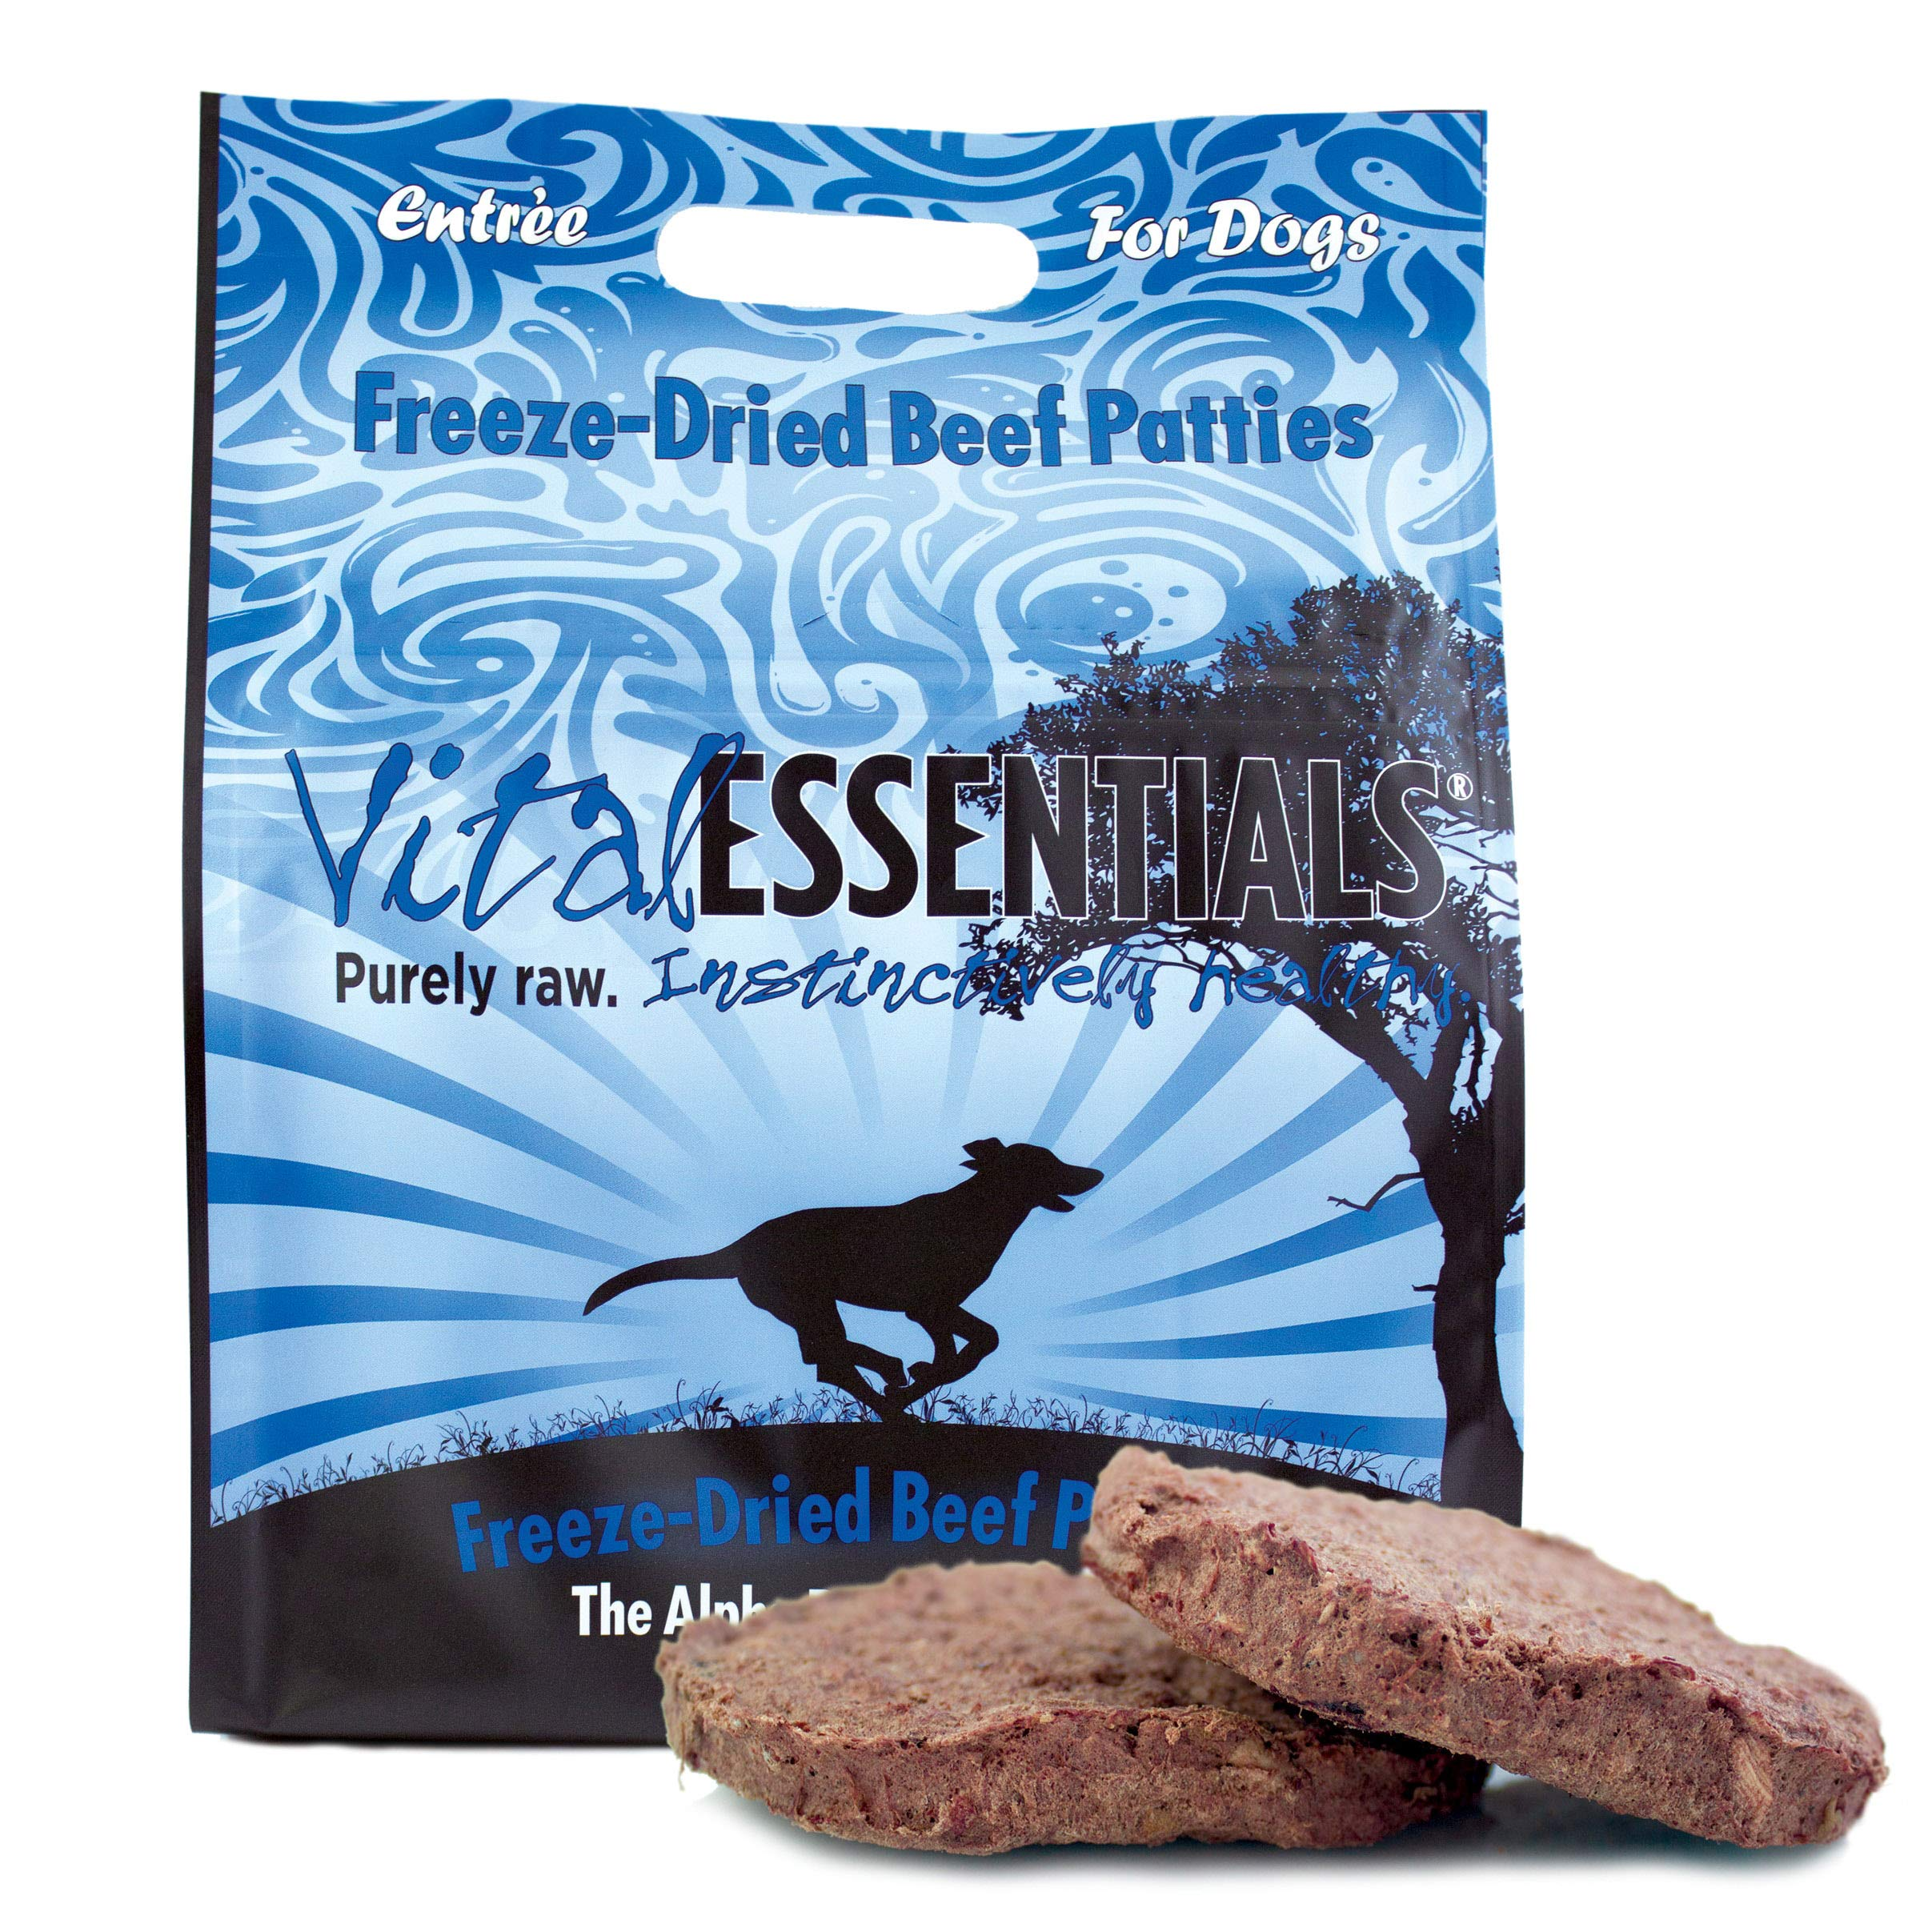 Vital Essentials Freeze Dried - All Natural - Raw - Grain Free Beef Patties Dog Food, 1 lb 14 oz Resealable Bag by Vital Essentials